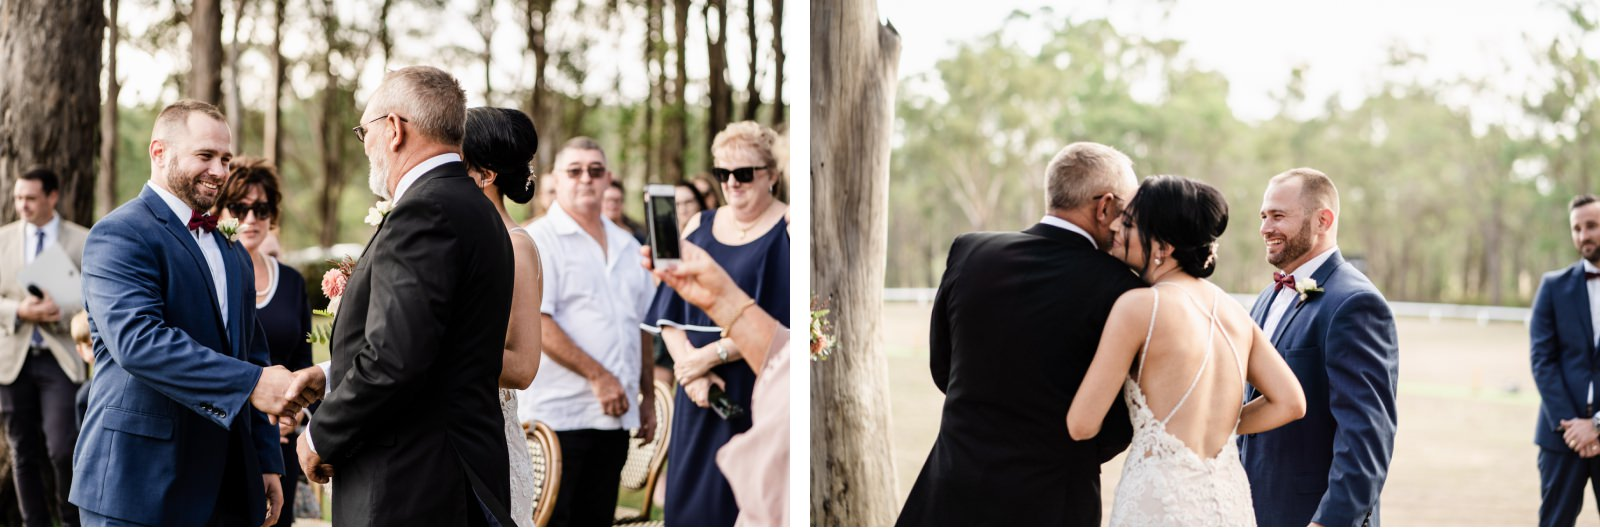 wandin-valley-estate-winery-lovedale-wedding-hunter-valley-wedding-photographer-22